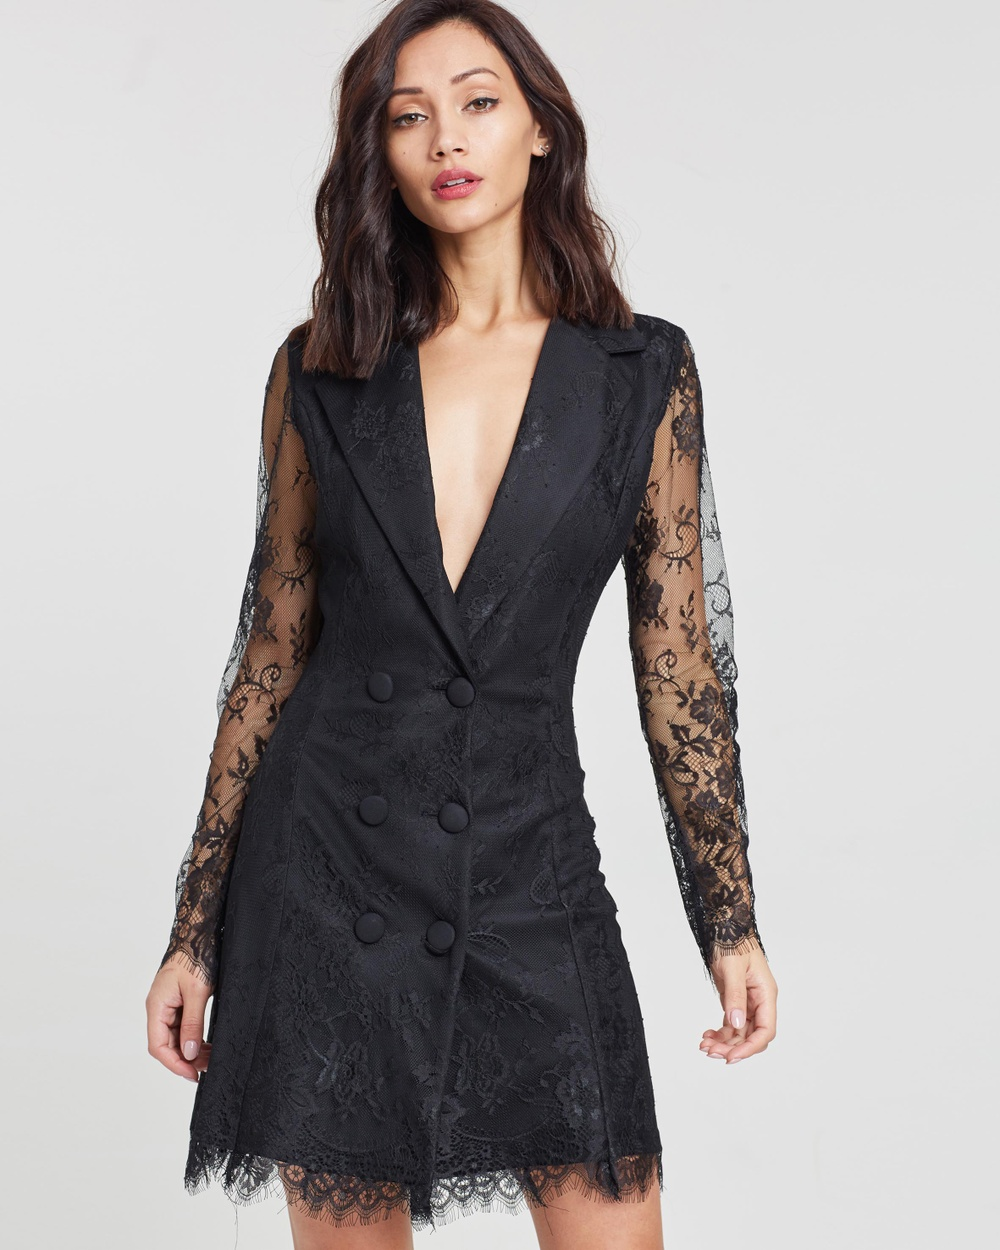 Missguided Lace Blazer Dress Dresses Black Lace Blazer Dress